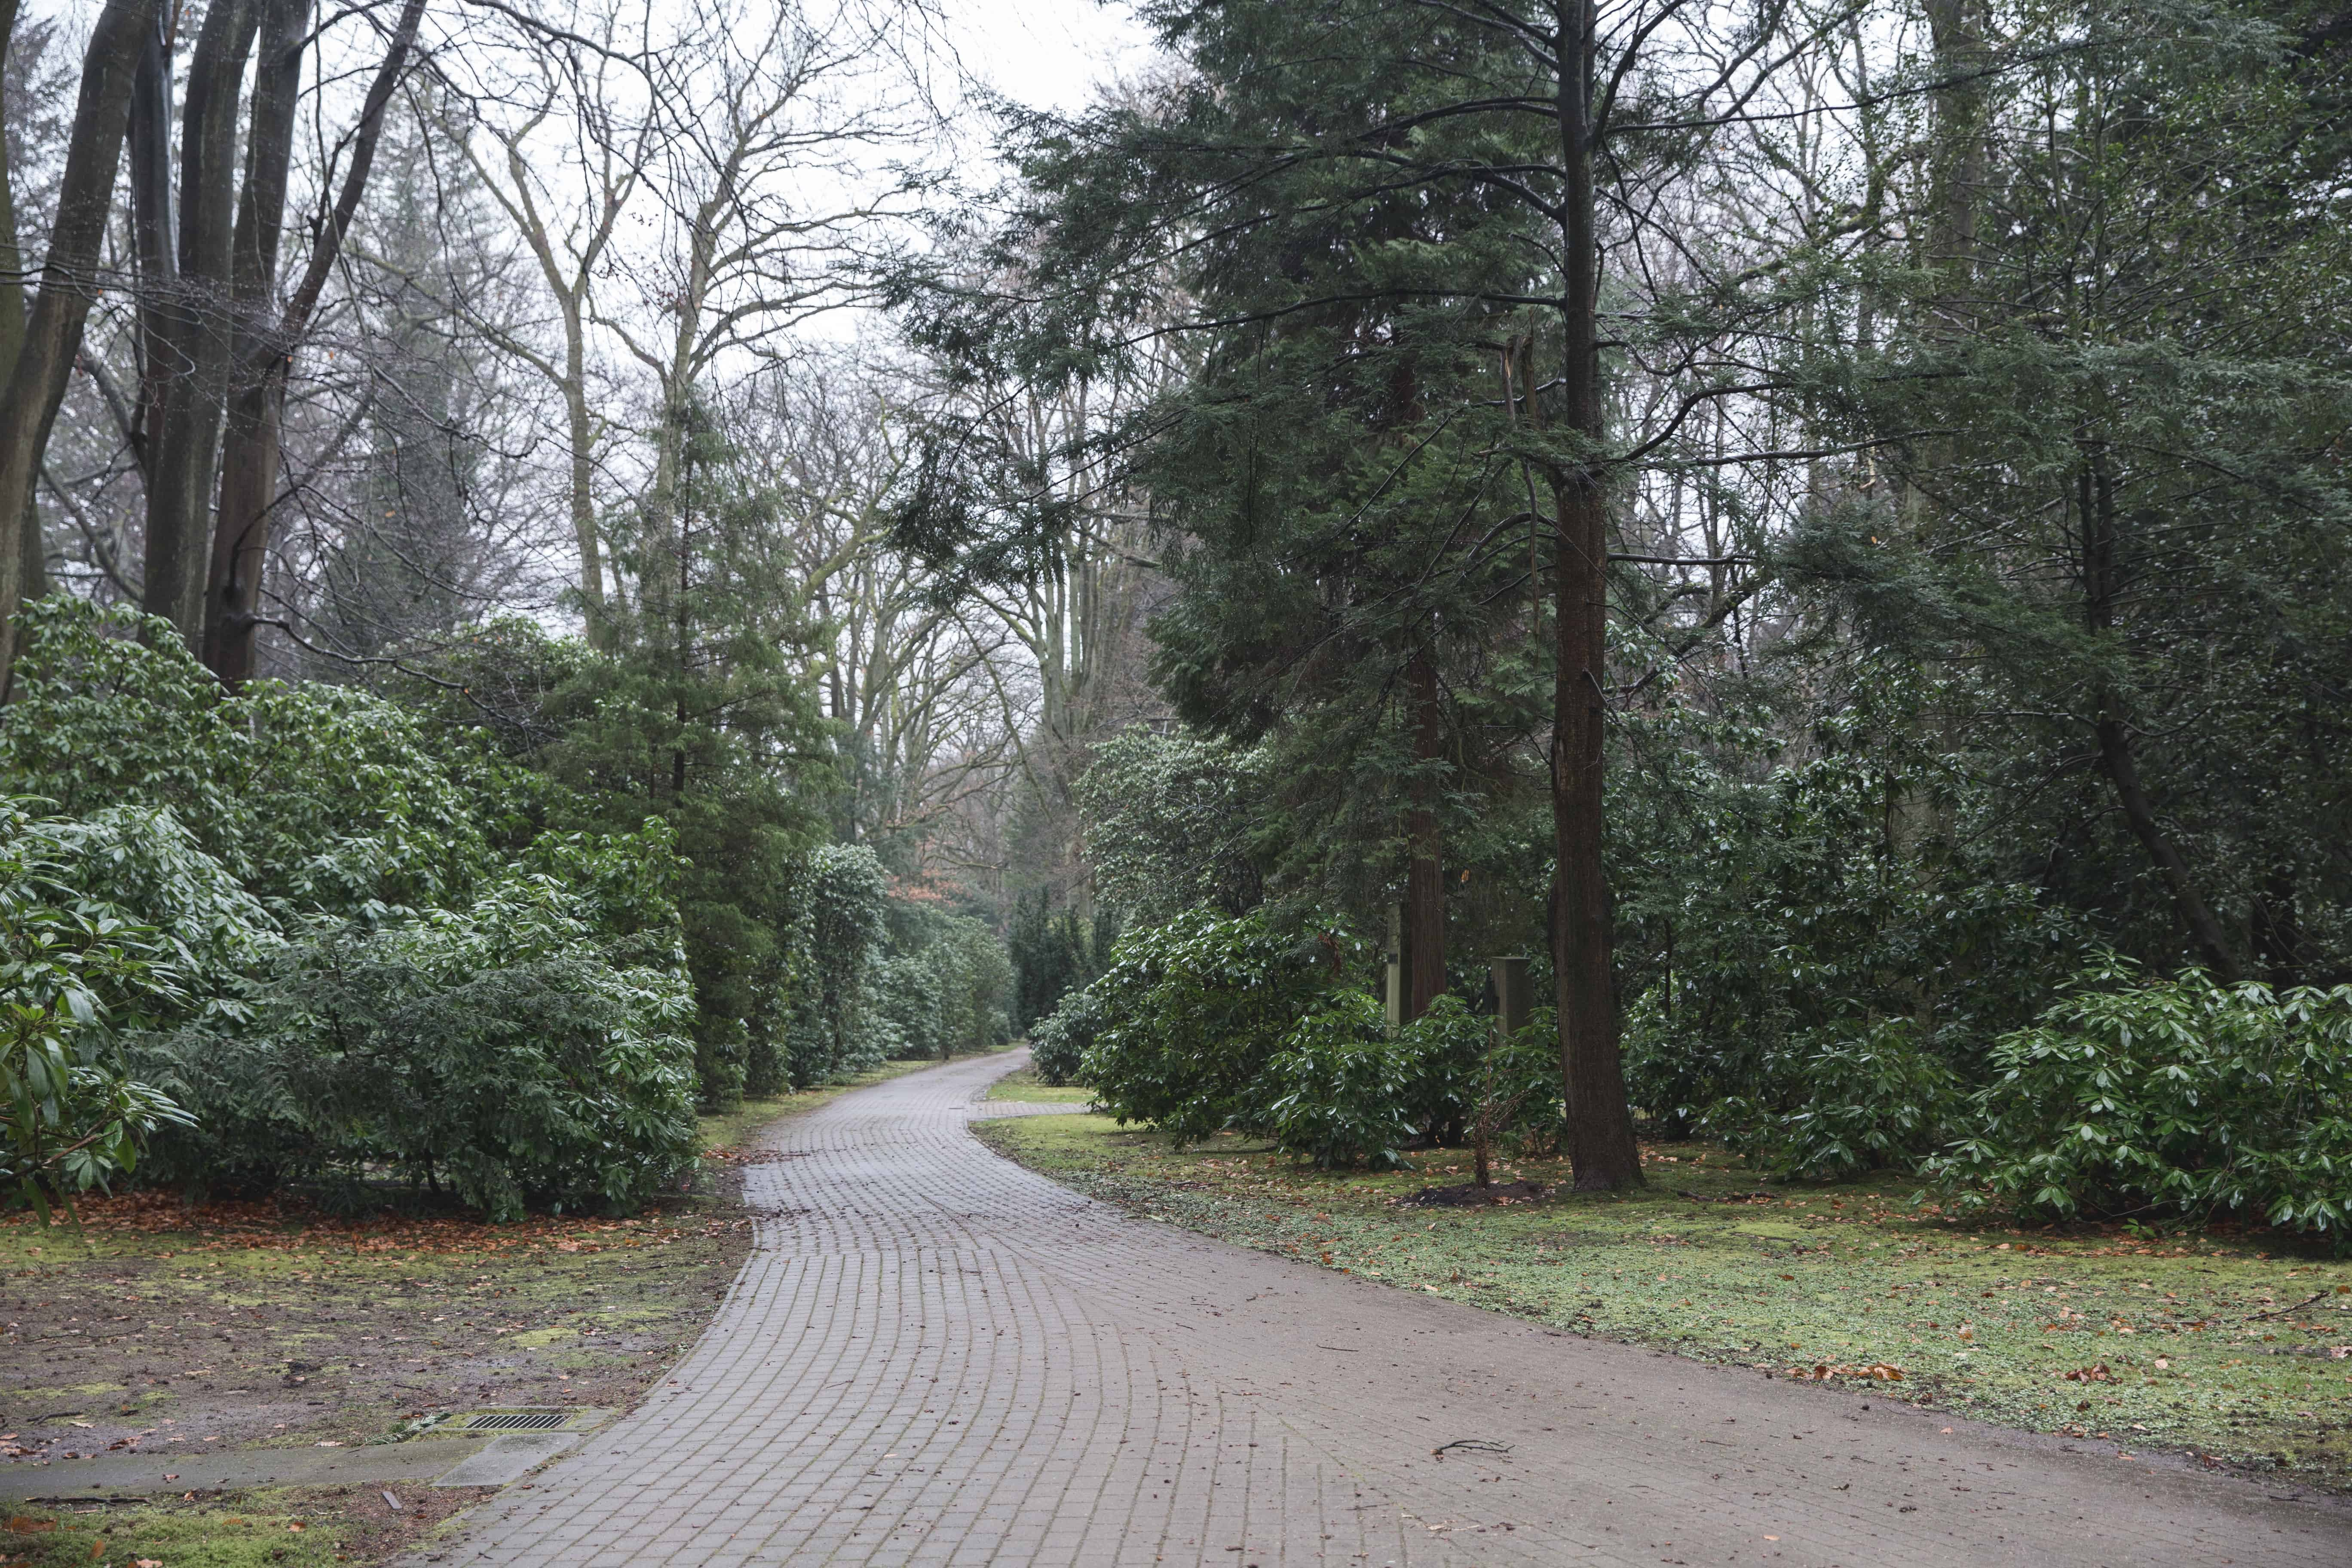 Pathway through the Ohlsdorf Cemetery on a rainy day in Hamburg, Germany